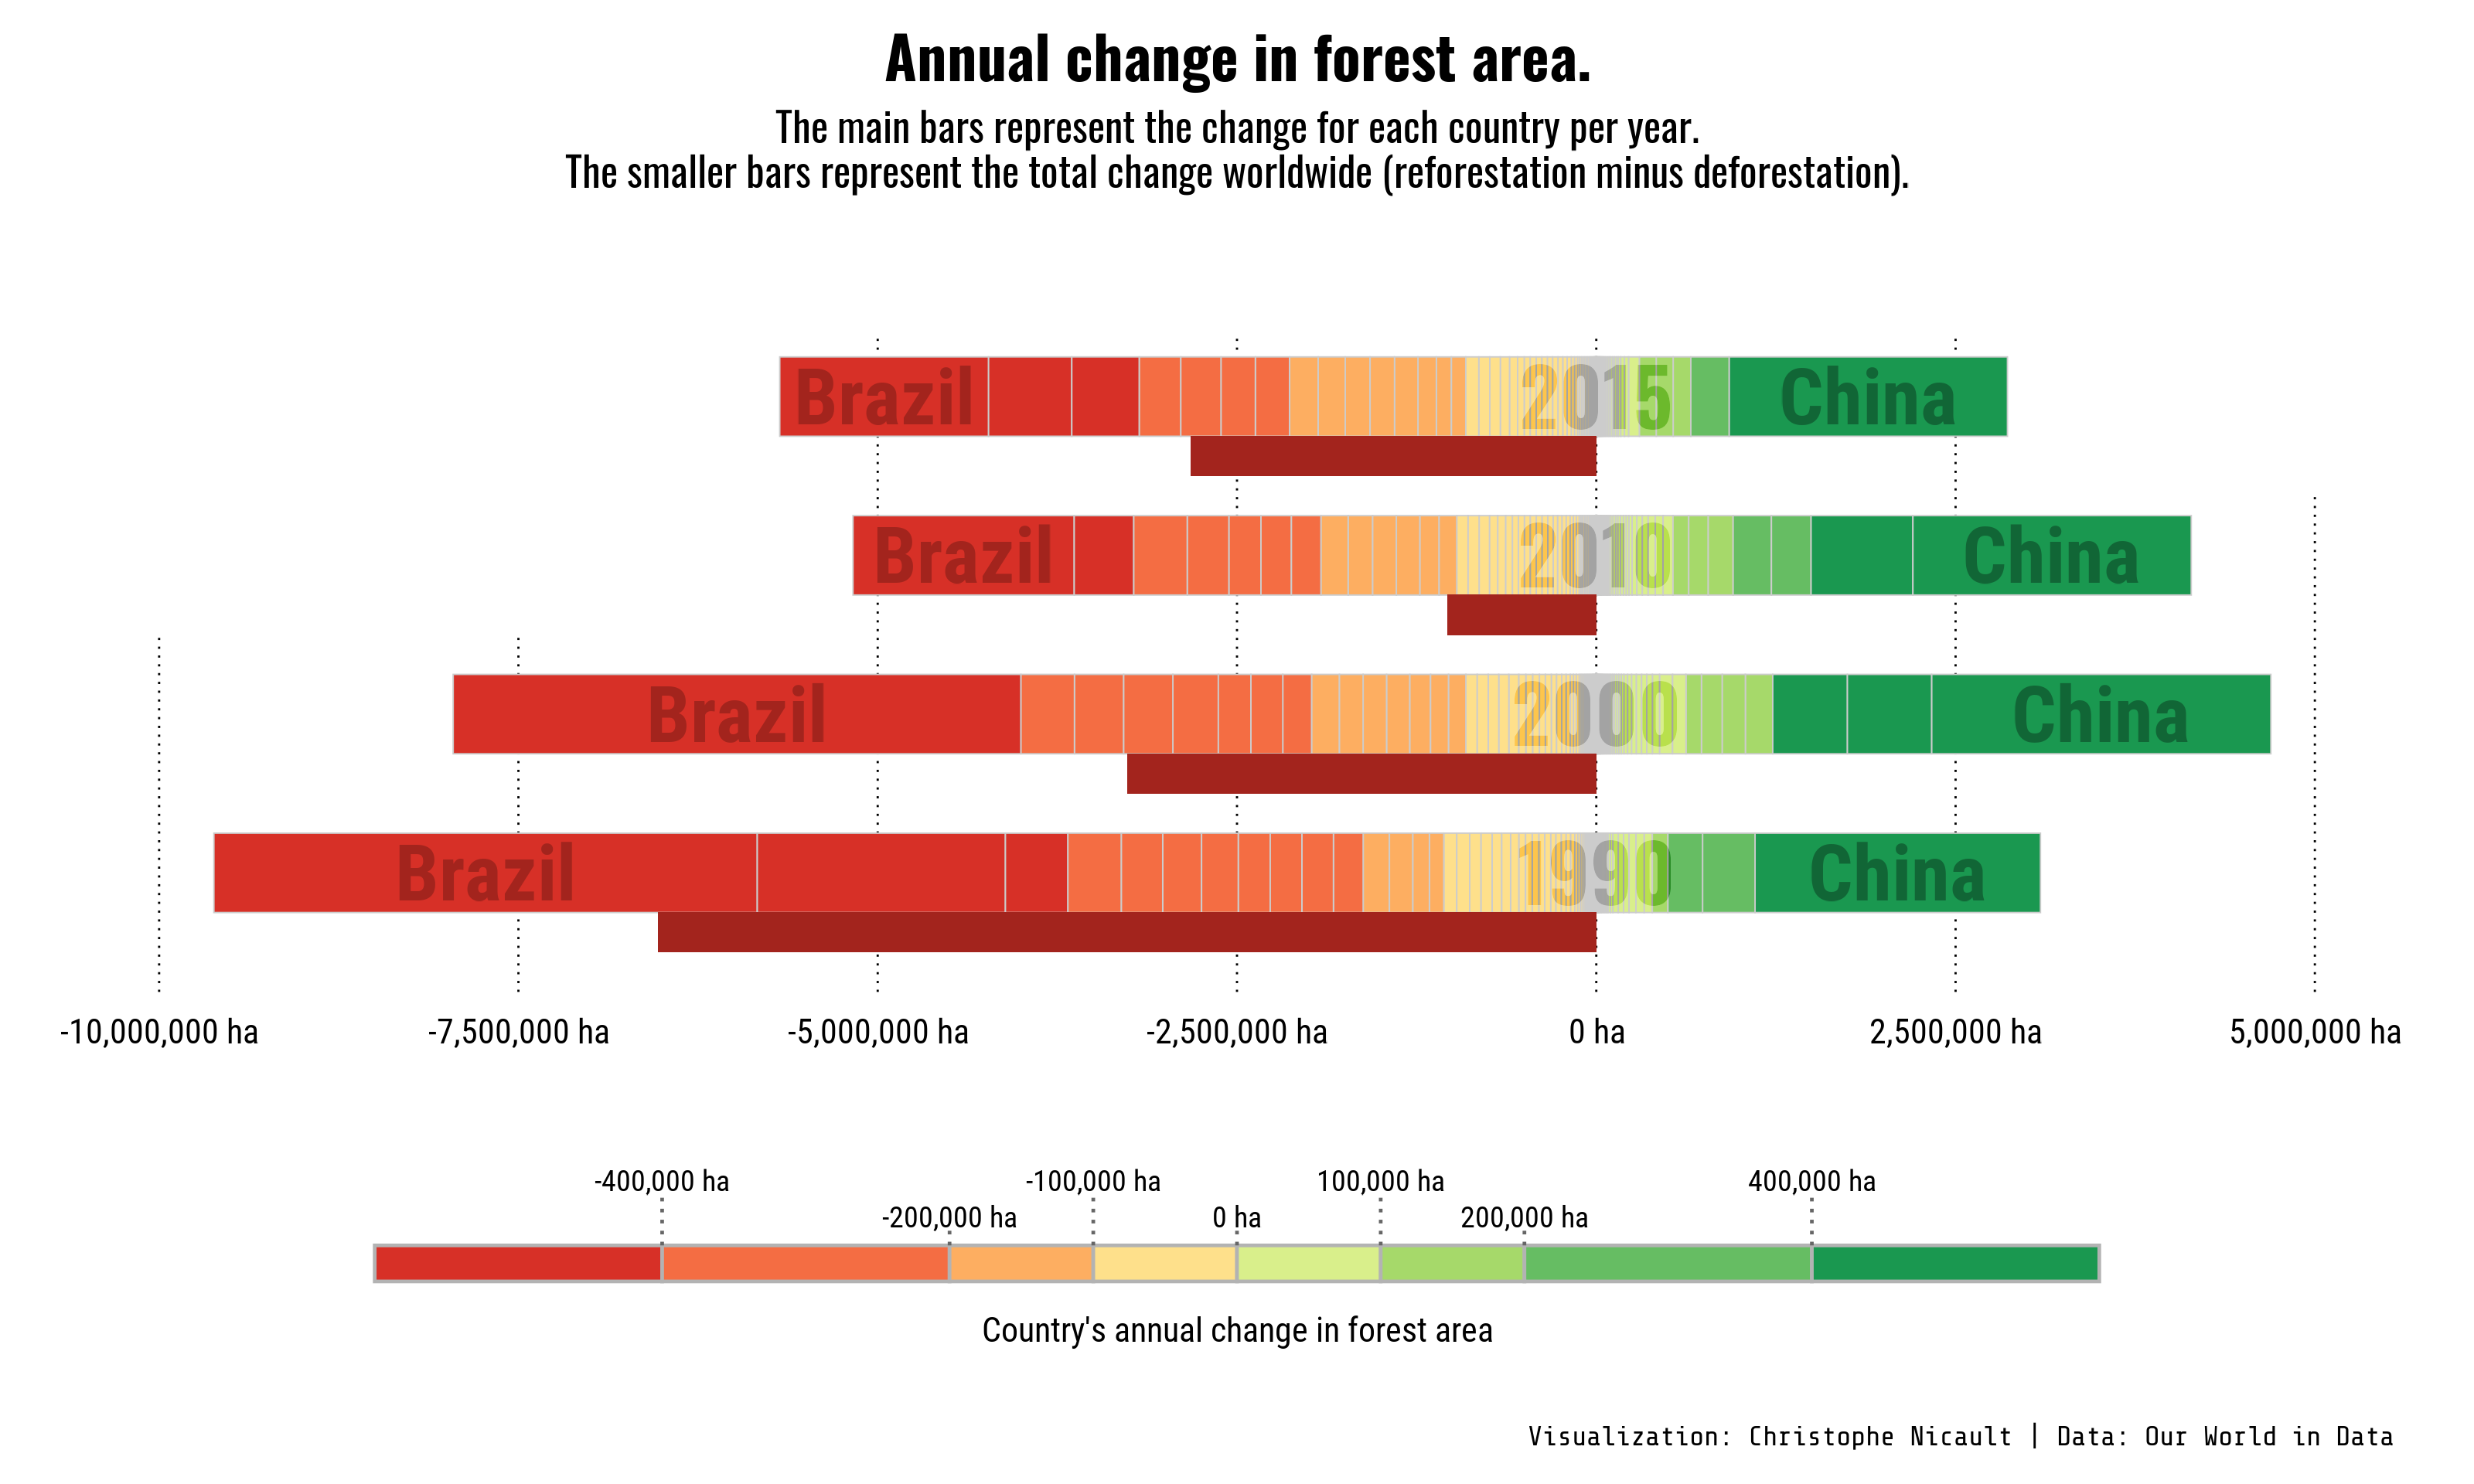 Annual Change in forest area